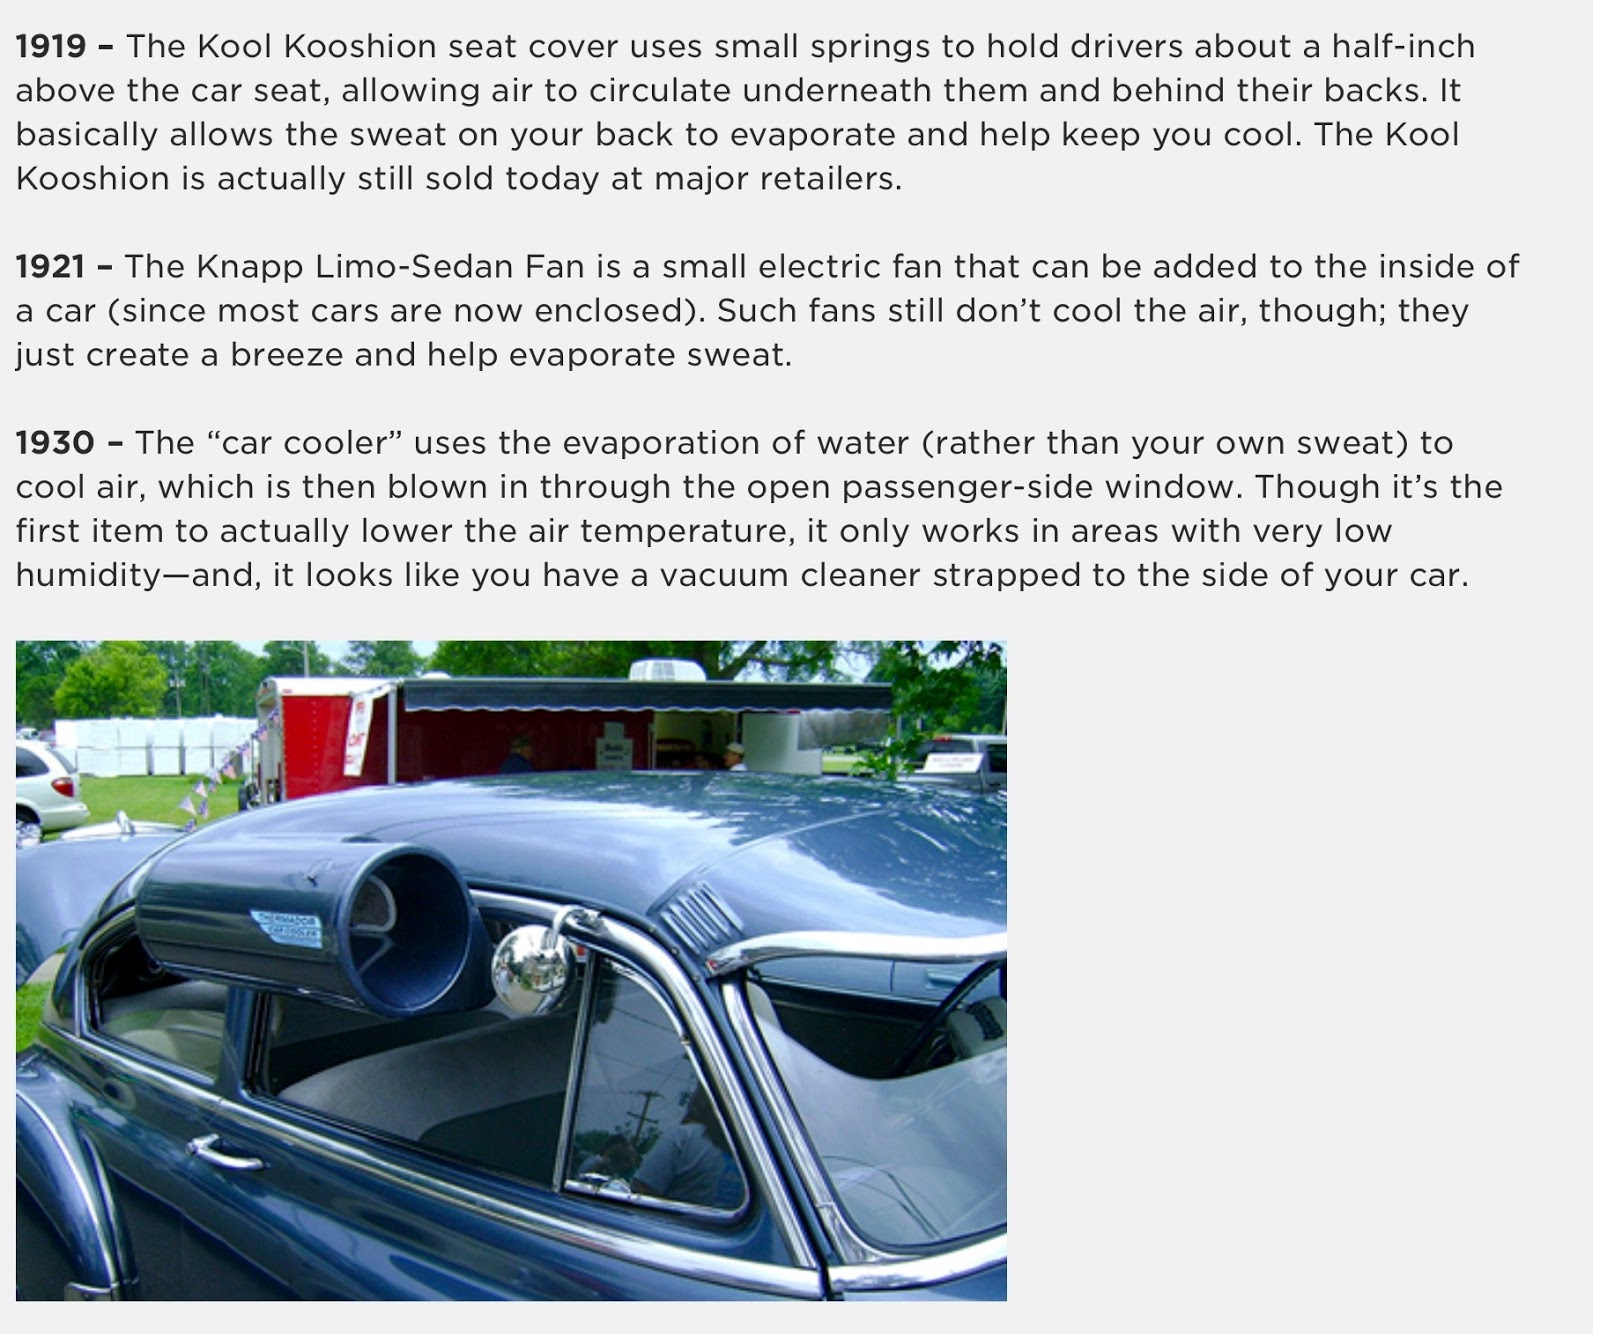 Garage Tech With Randy Rundle October 2016 Electric Window Lifts Wiring Diagram For 1955 Studebaker Passenger Cars All Models Except 4 Door Sedans Keep In Mind That Air Conditioning Homes Was Not Common Until After World War Ii Conditioners First Started To Appear The Late 1930 But